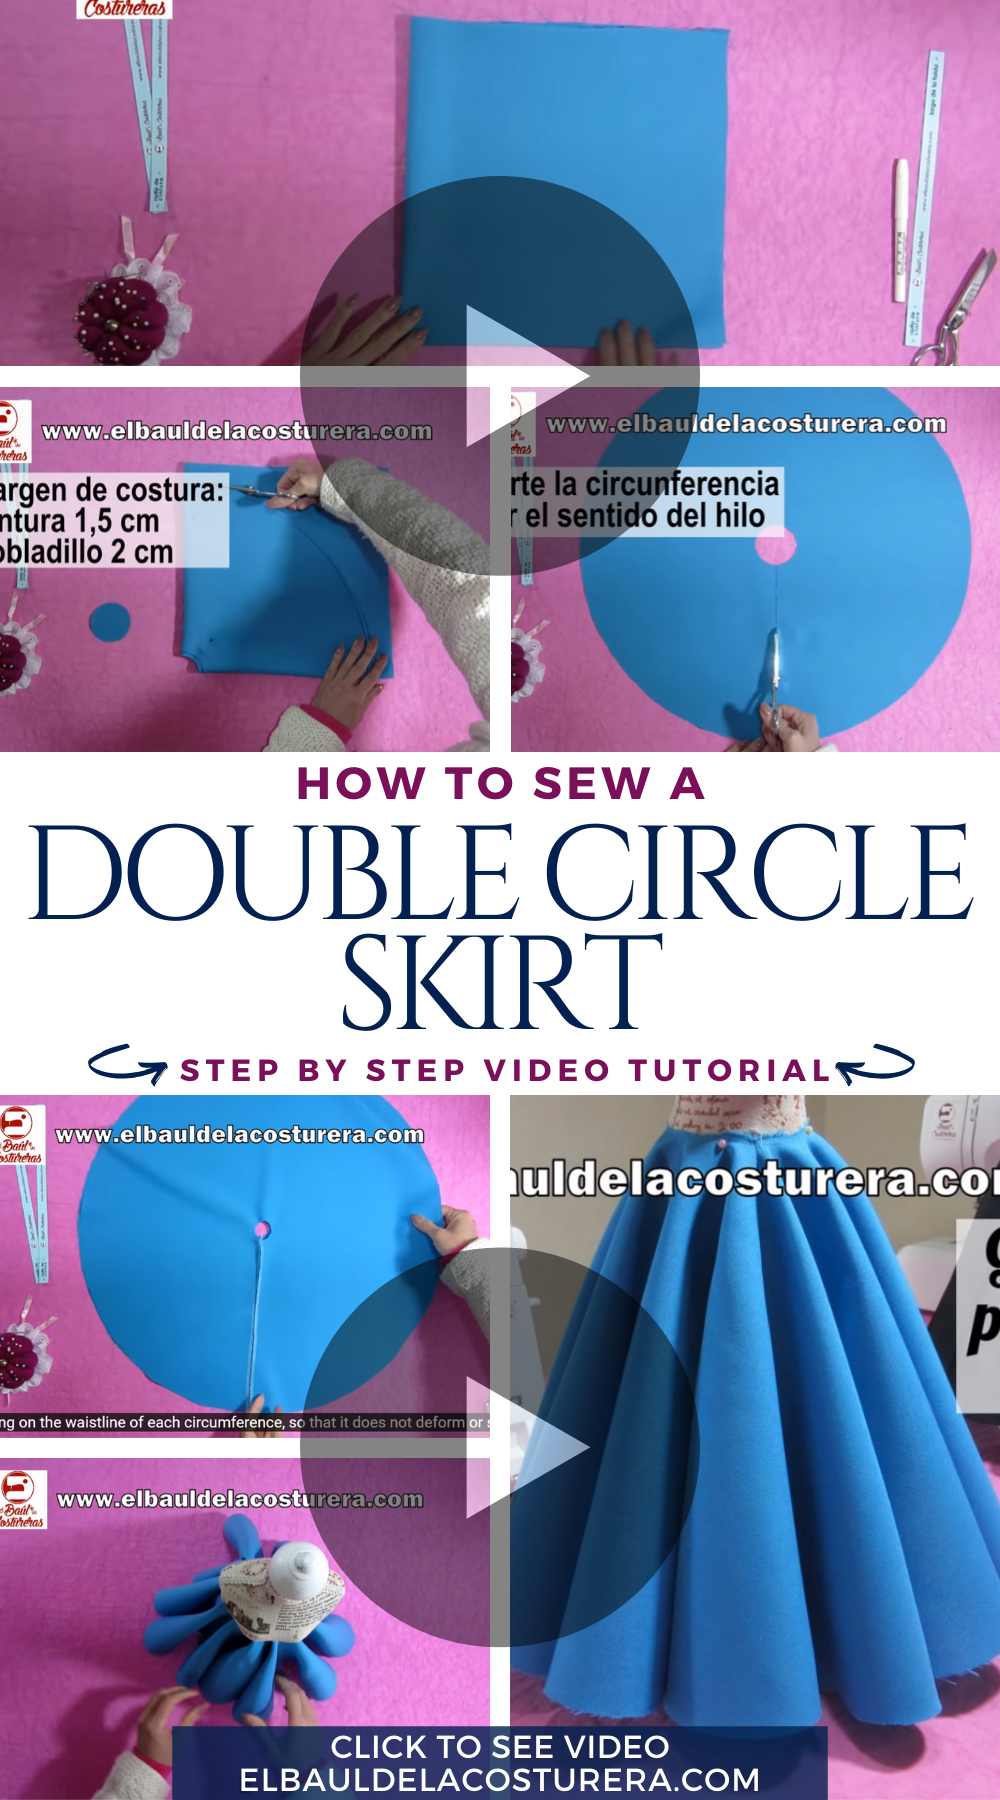 How to Sew a Double Circle Skirt - Sewing Video Tu